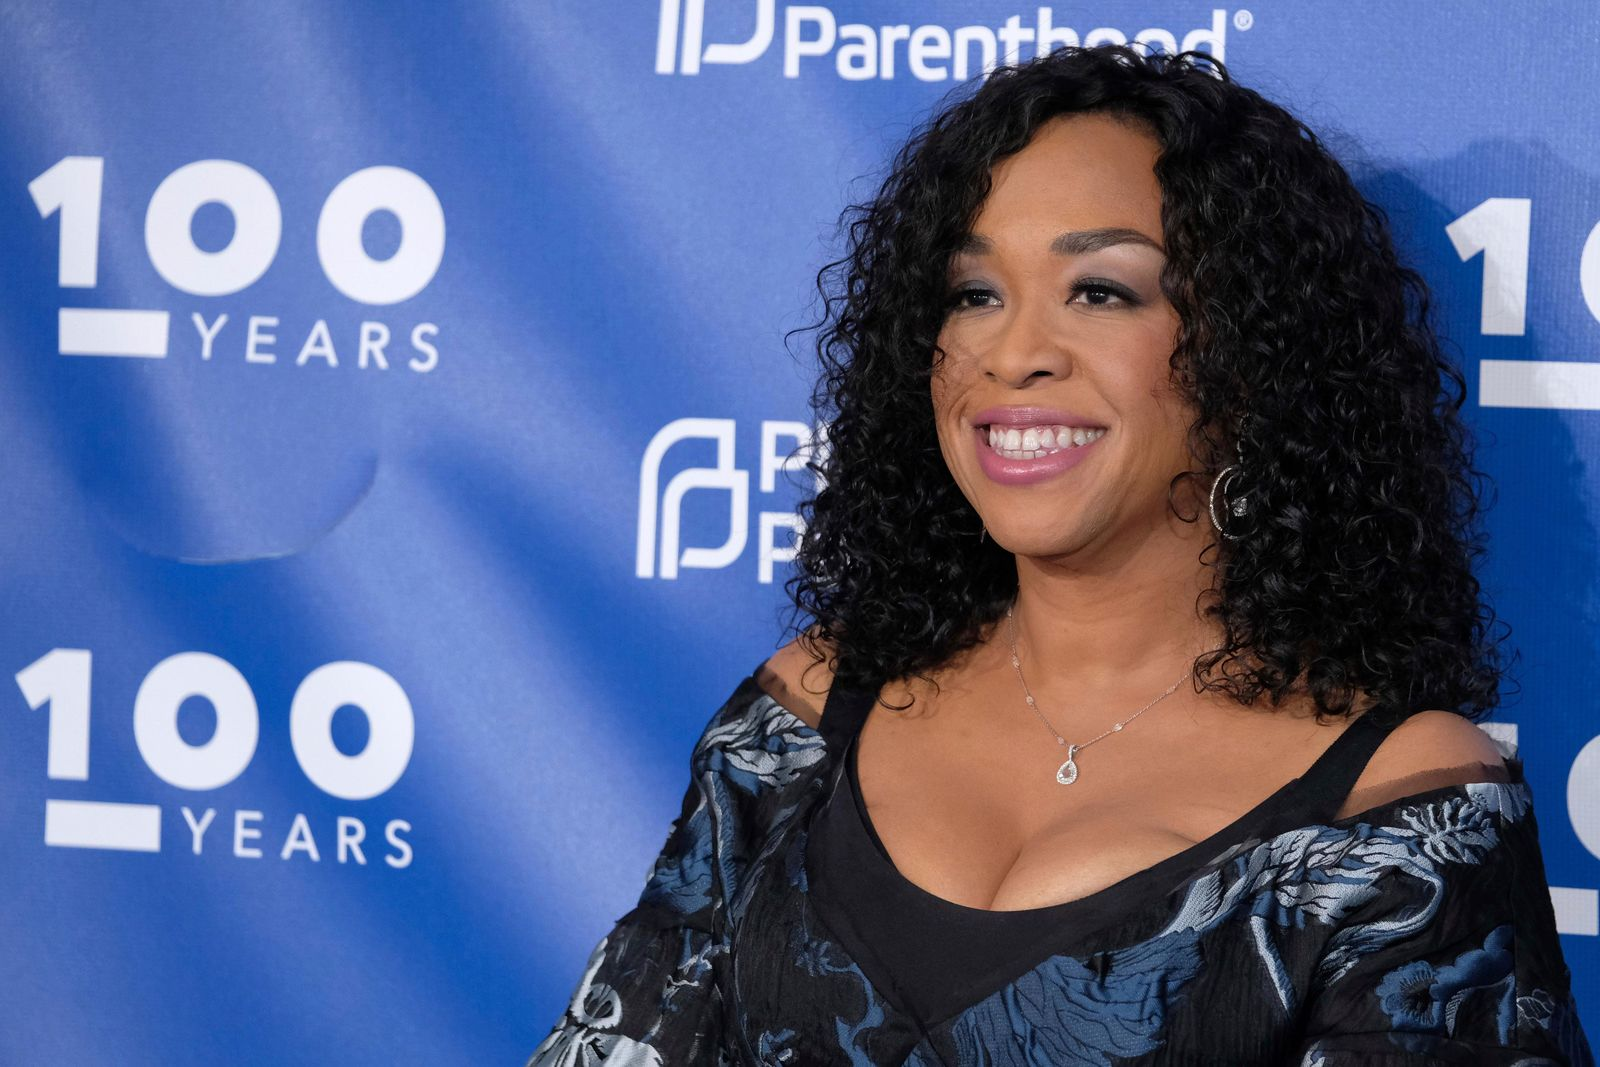 Shonda Rhimes attends the Planned Parenthood 100th Anniversary Gala on Tuesday, May 2, 2017 in New York. (Photo by Charles Sykes/Invision/AP)